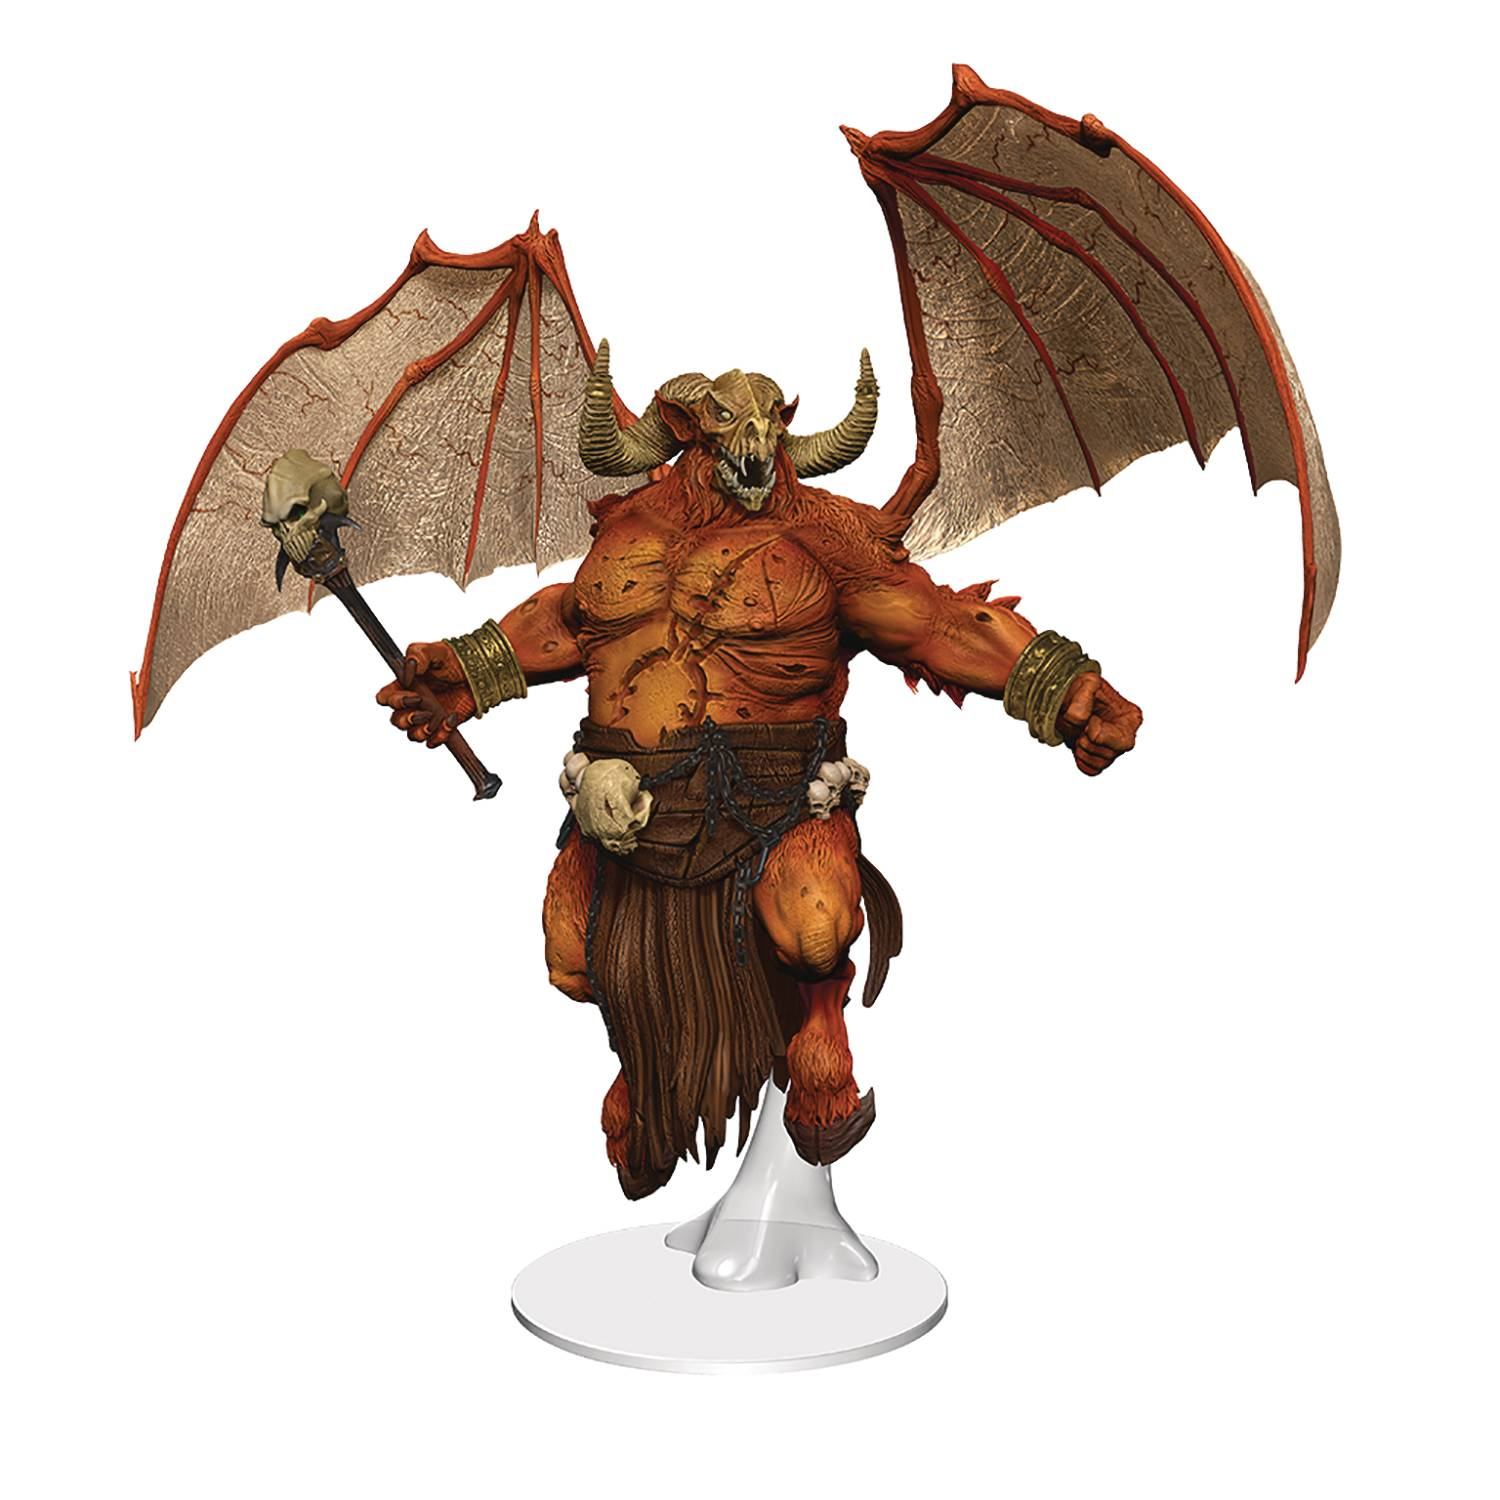 D&D Icons of the Realms Demon Lord Orcus Premium Figure